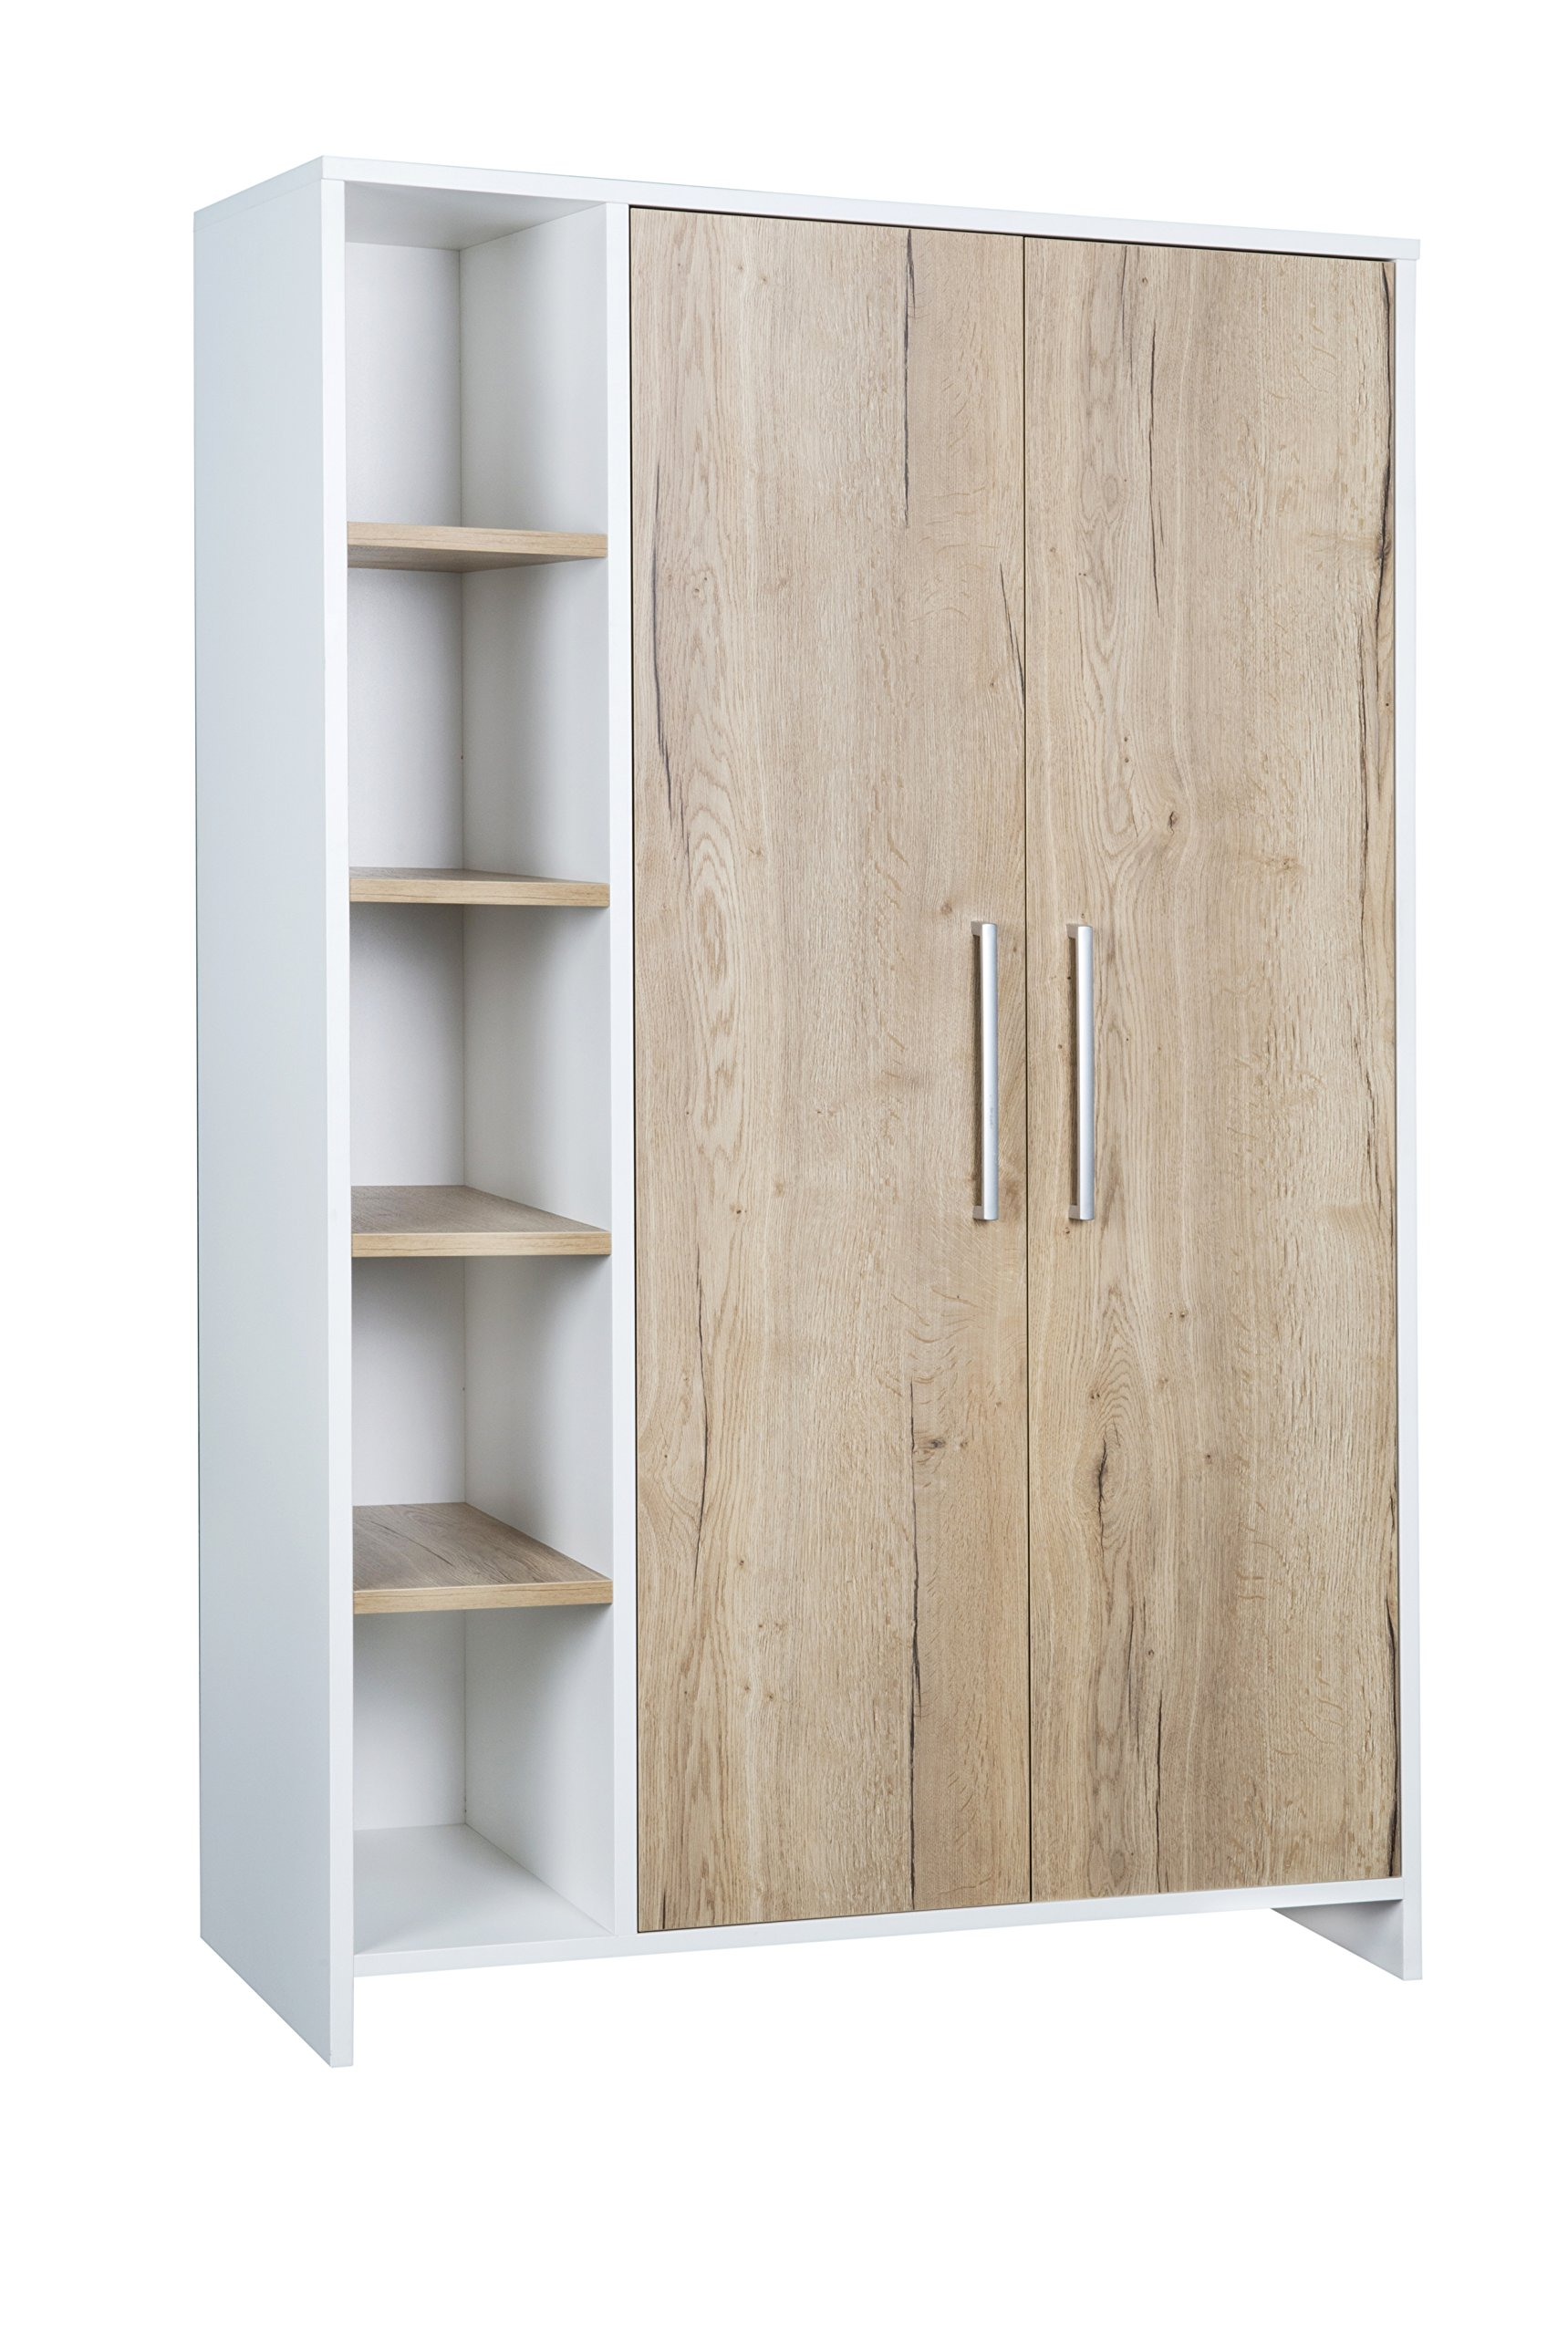 Schardt Eco Plus 06 566 09 00 Cabinet with 2 Doors and Side Shelf